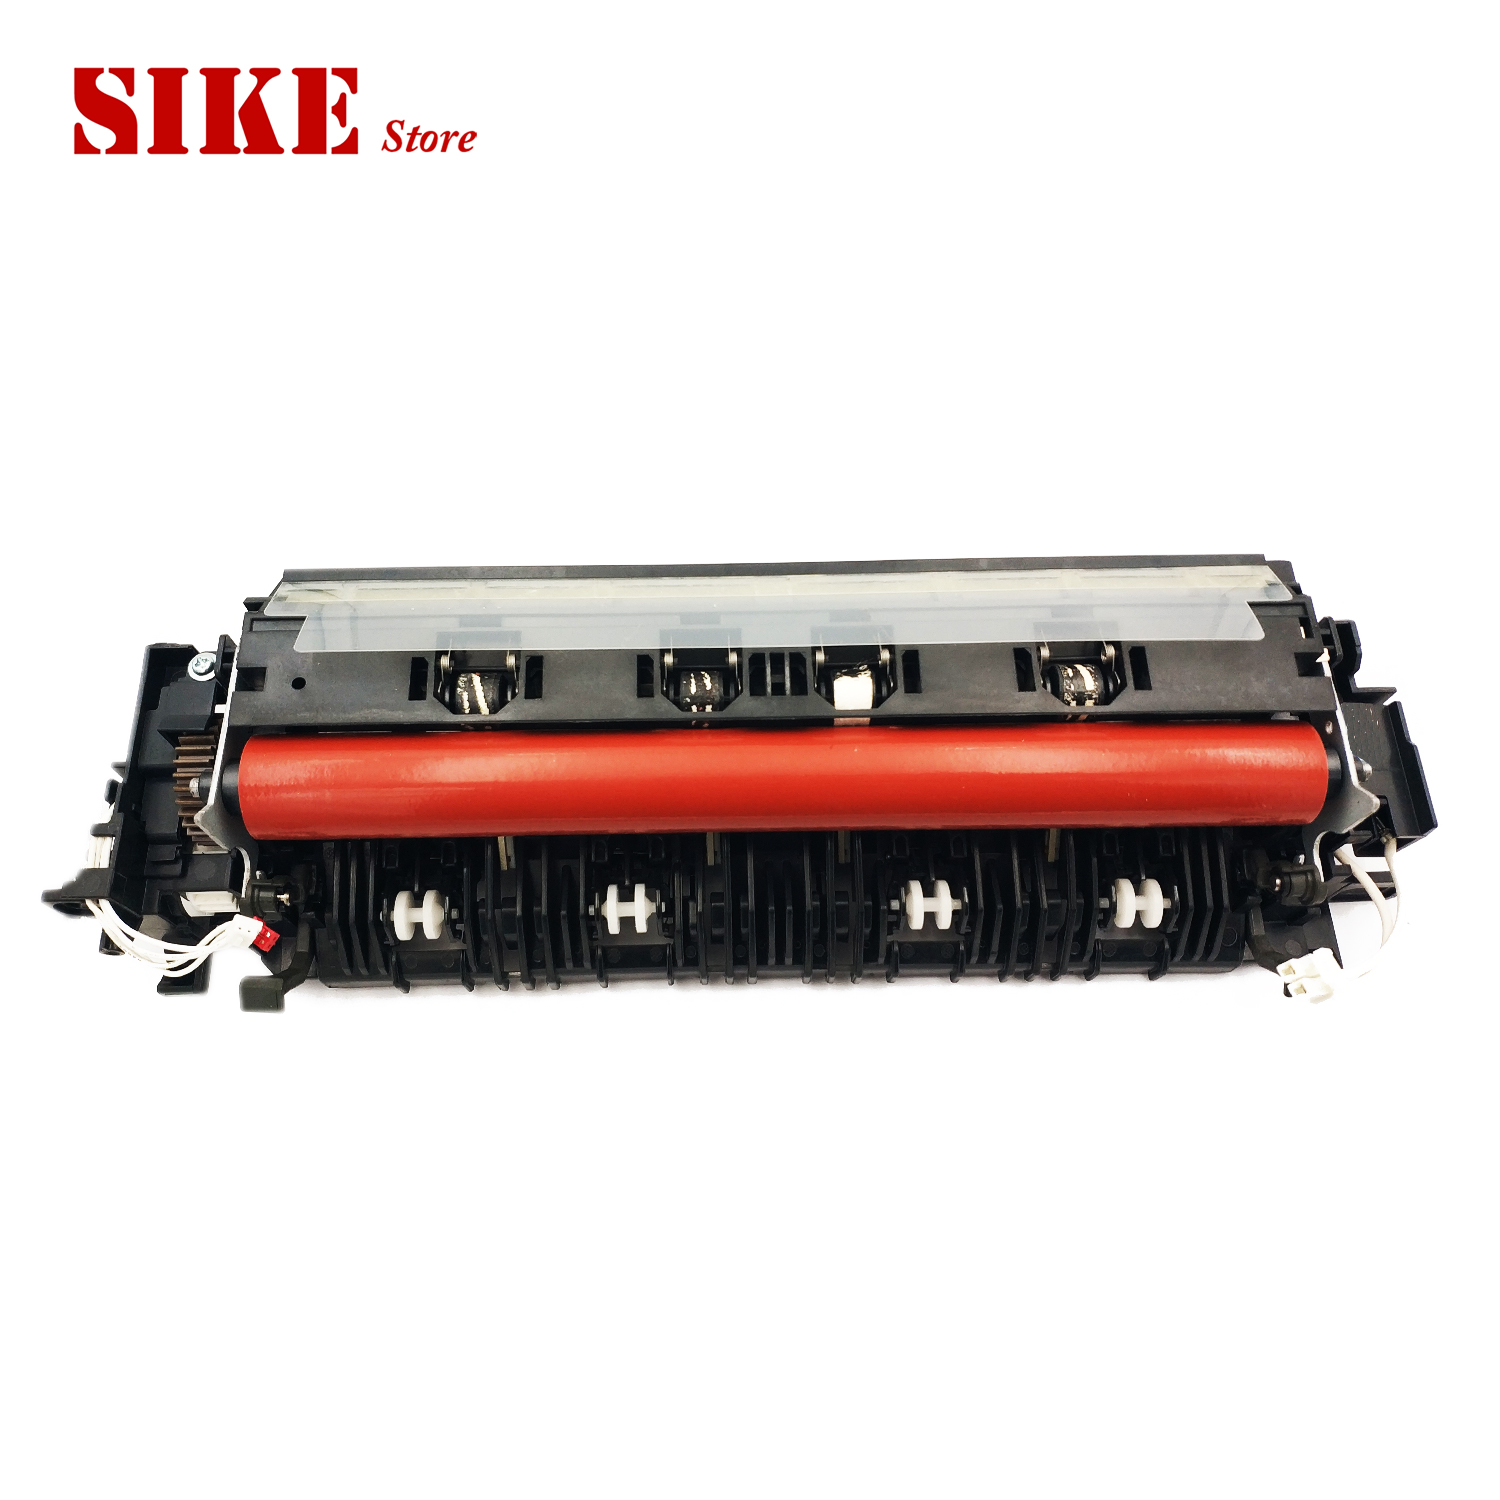 BROTHER FUSER UNIT LR2232001 LY6754001 LY6753001 MFC 9130 9140 DCP 9020 HL3170